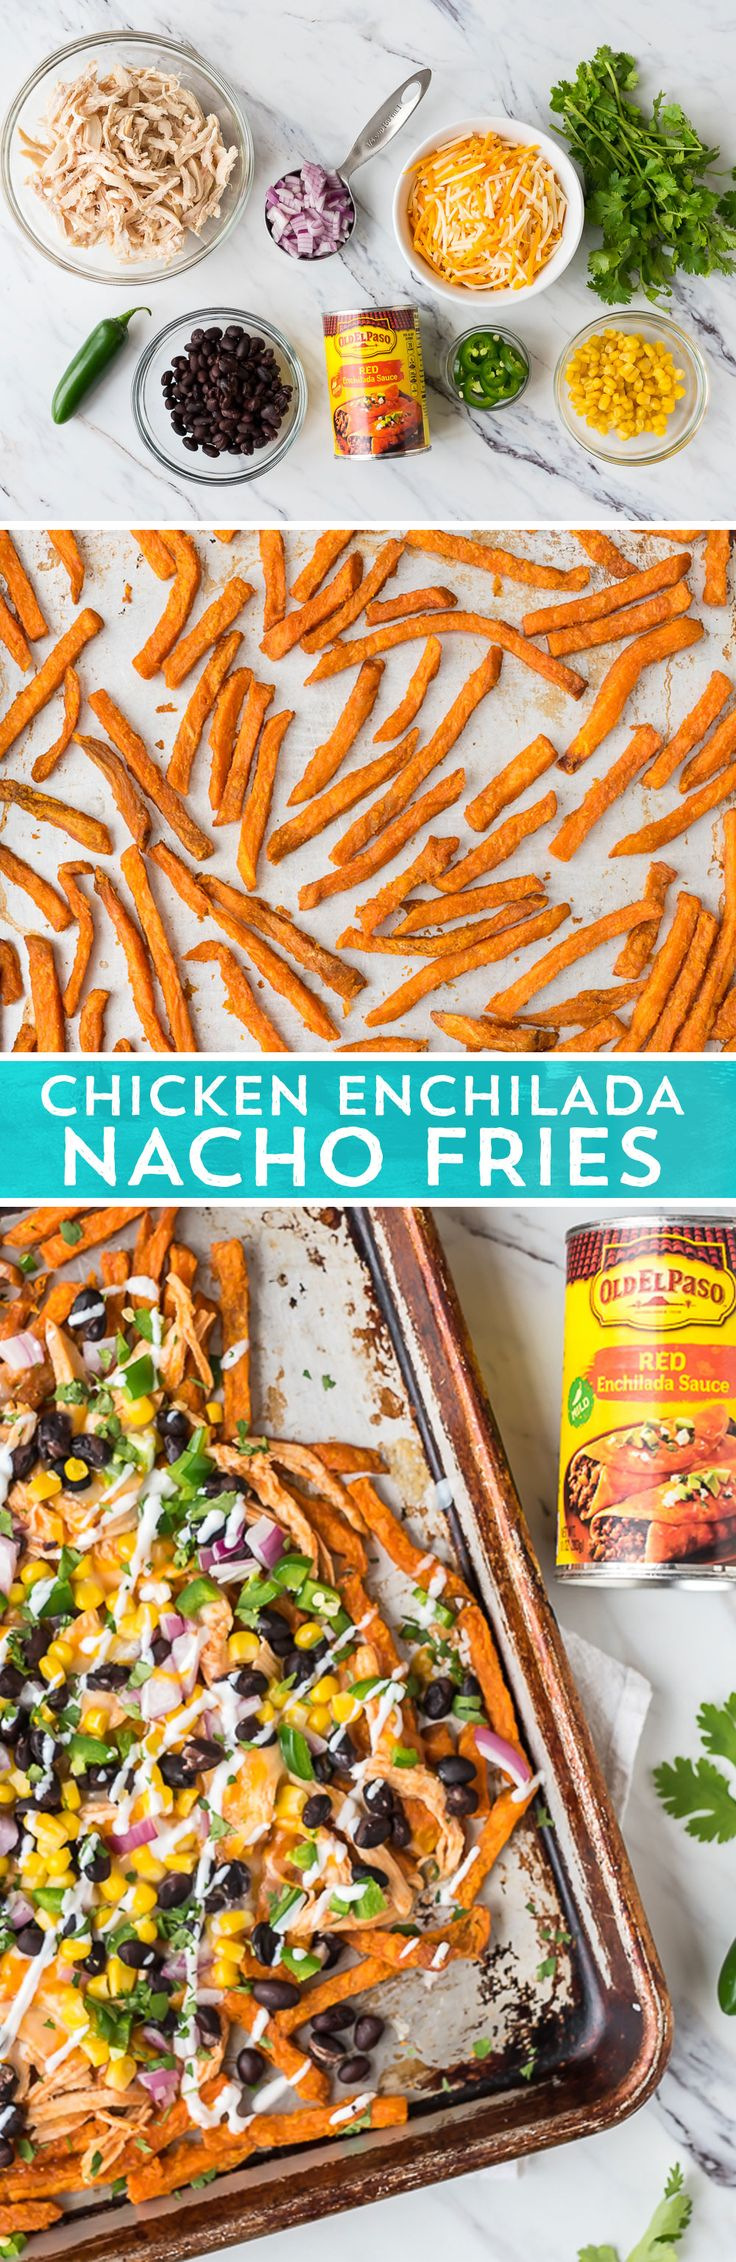 Classic enchilada ingredients and sweet potato fries come together in this easy dish from @wellplated. Baked fries get topped with shredded chicken mixed with Old El Paso™ Red Enchilada Sauce, shredded cheese, black beans, whole kernel corn, diced red onion, and jalapeno pepper before heading back to the oven. Top with sour cream and fresh cilantro. Perfect for a crazy weeknight, hosting a party, or hitting the couch for some TV binging.